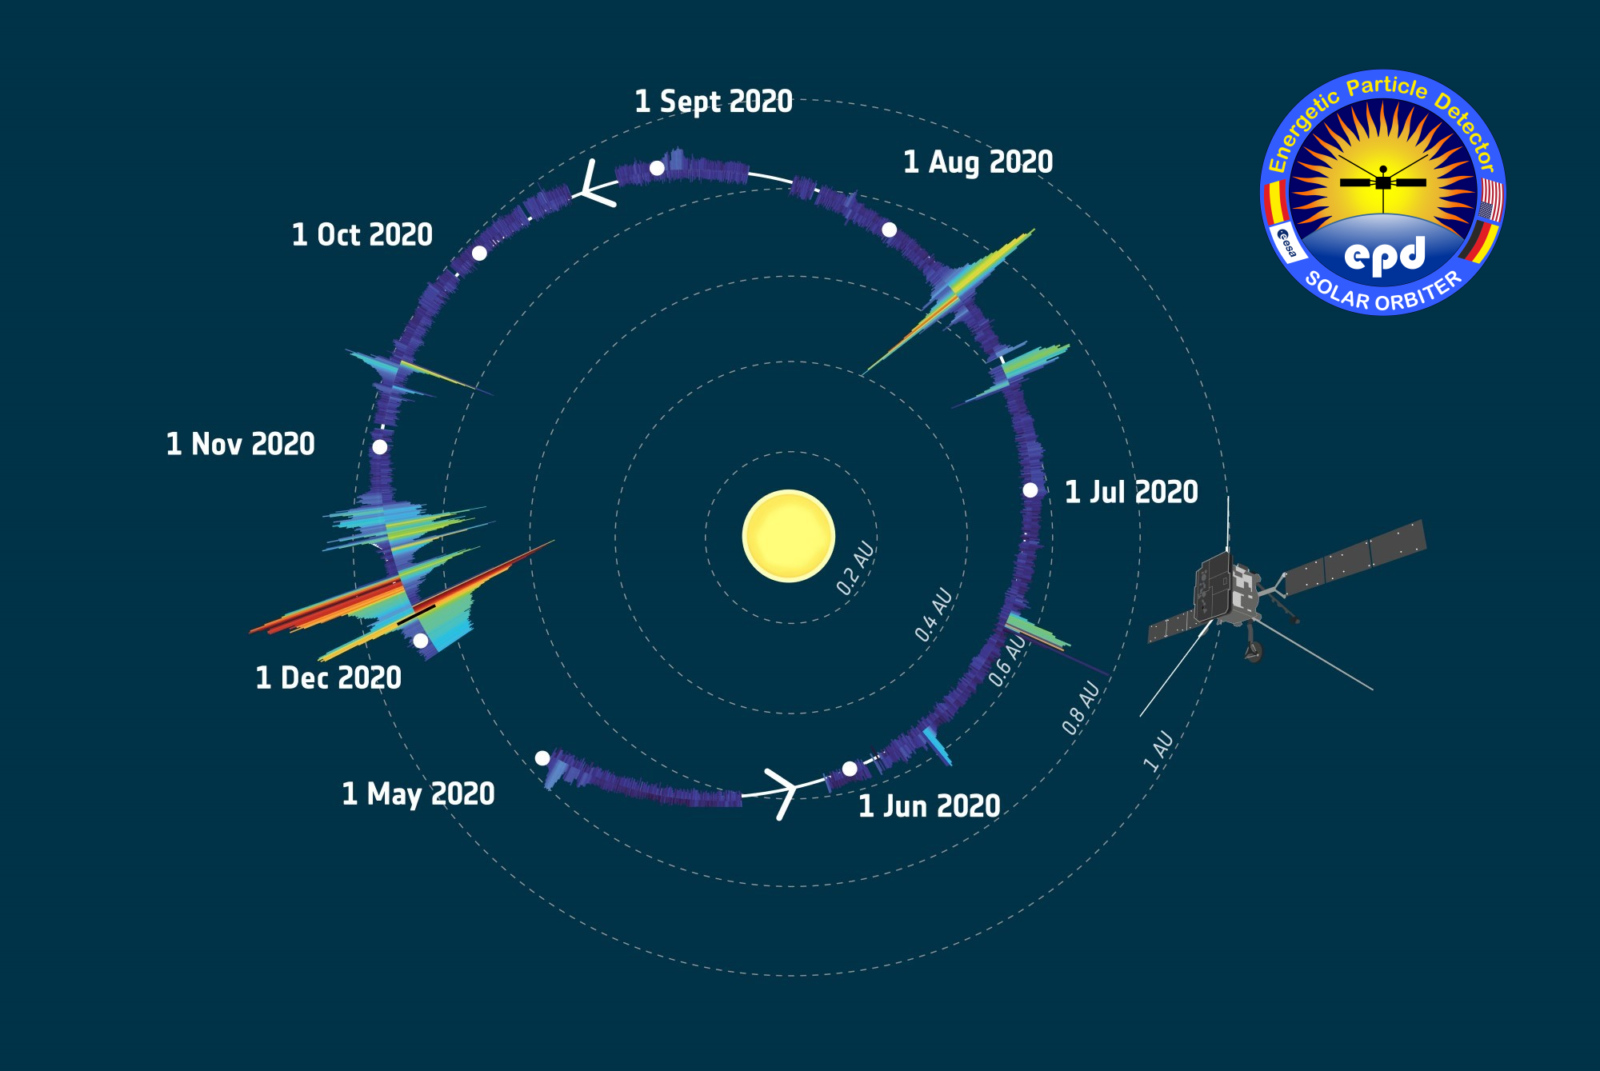 A plot showing the measured electron and ion intensities along the trajectory of the Solar Orbiter during it's first year of operations.